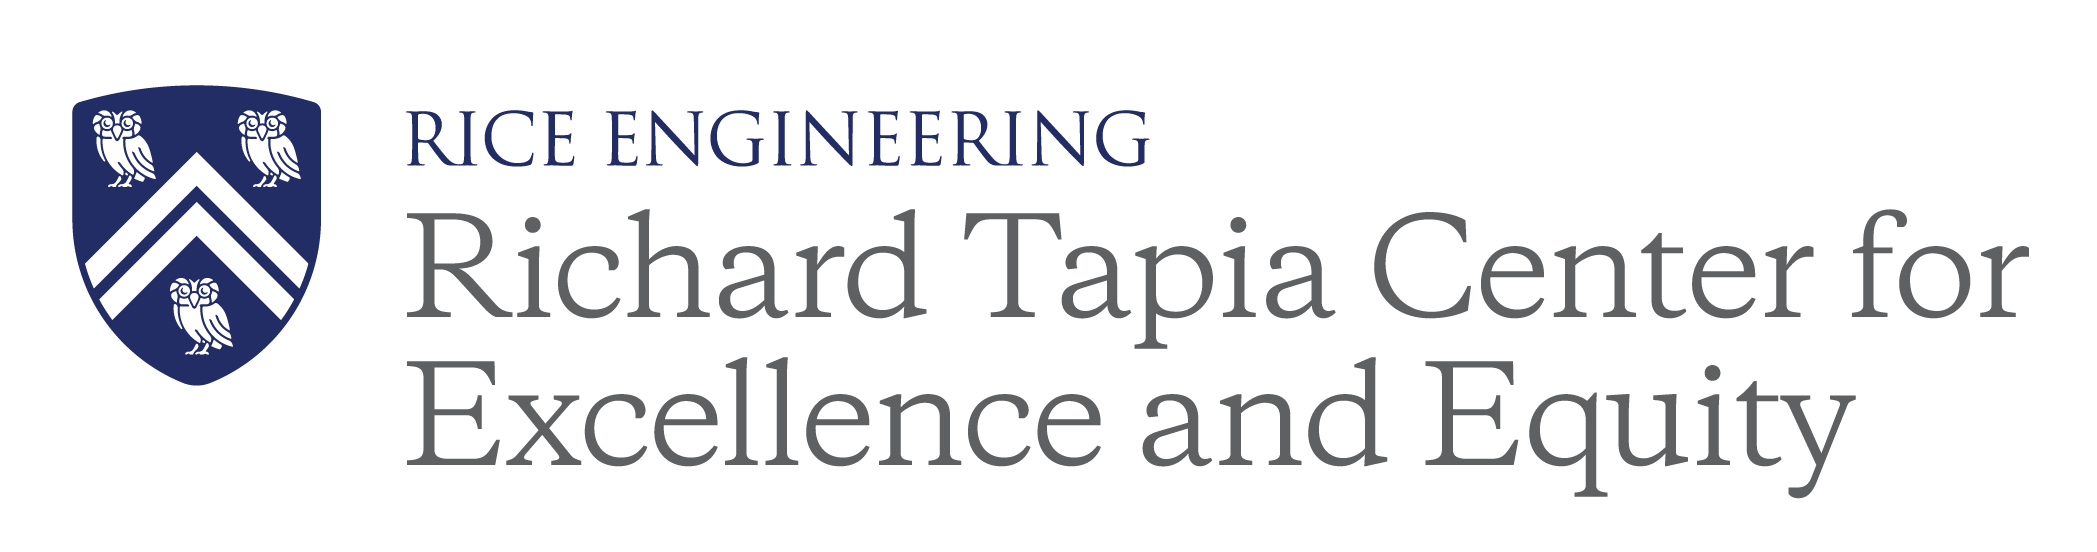 Richard Tapia Center for Excellence and Equity at Rice University Logo